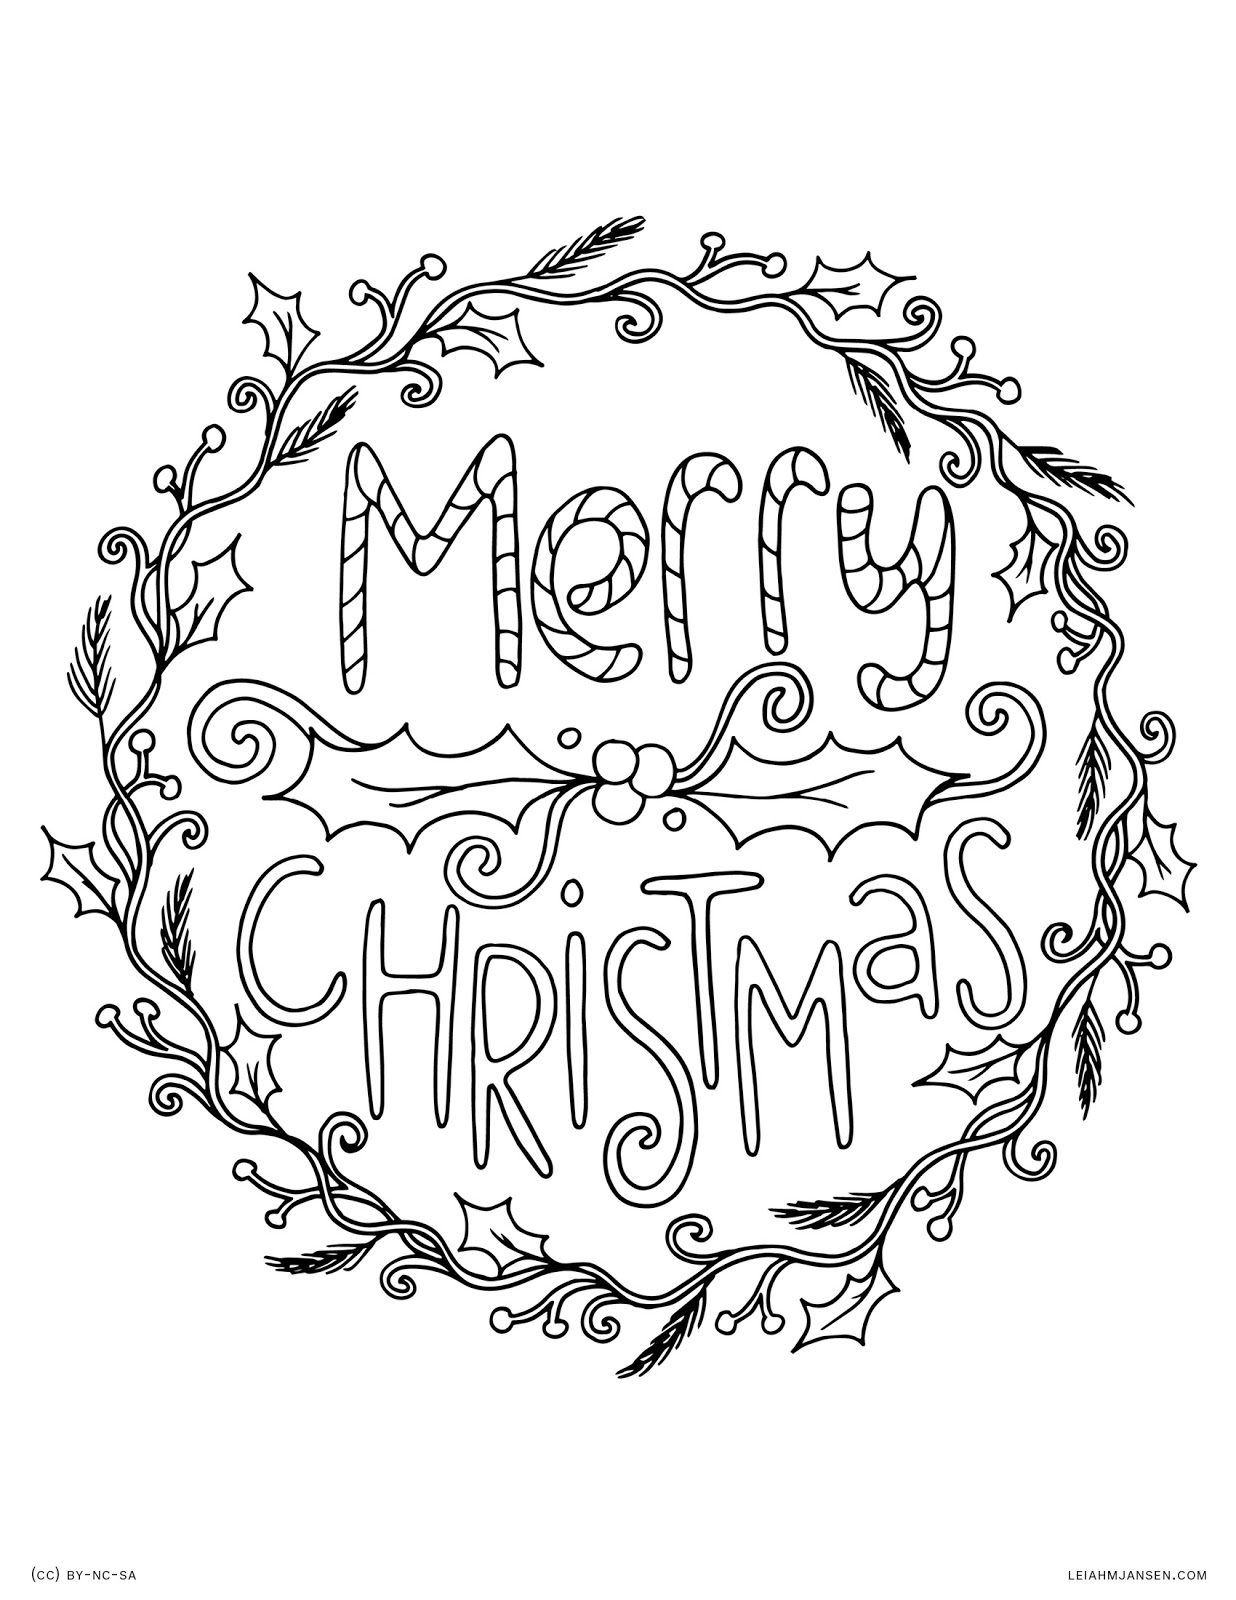 Christmas Coloring Pages Merry With Make This Page The Best - Merry-christmas-words-coloring-pages